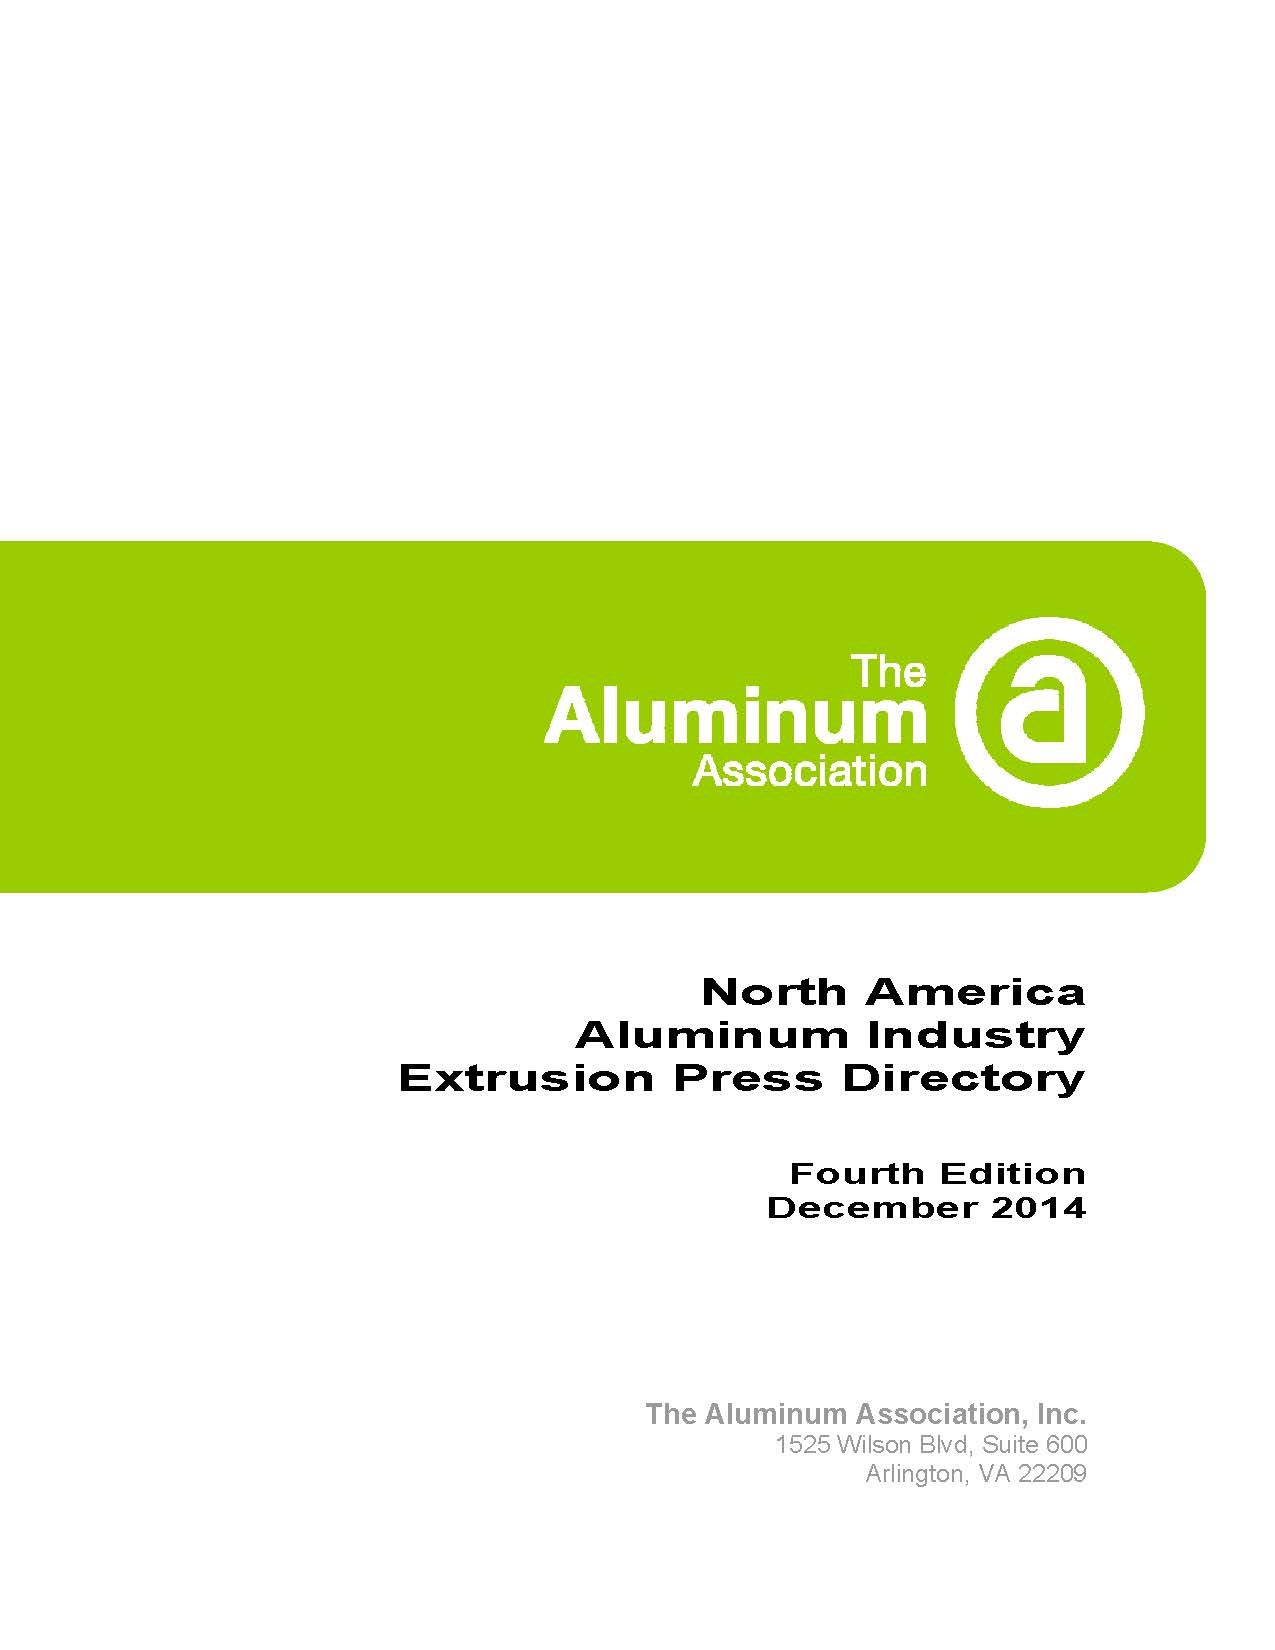 North America Aluminum Industry Extrusion Press Directory